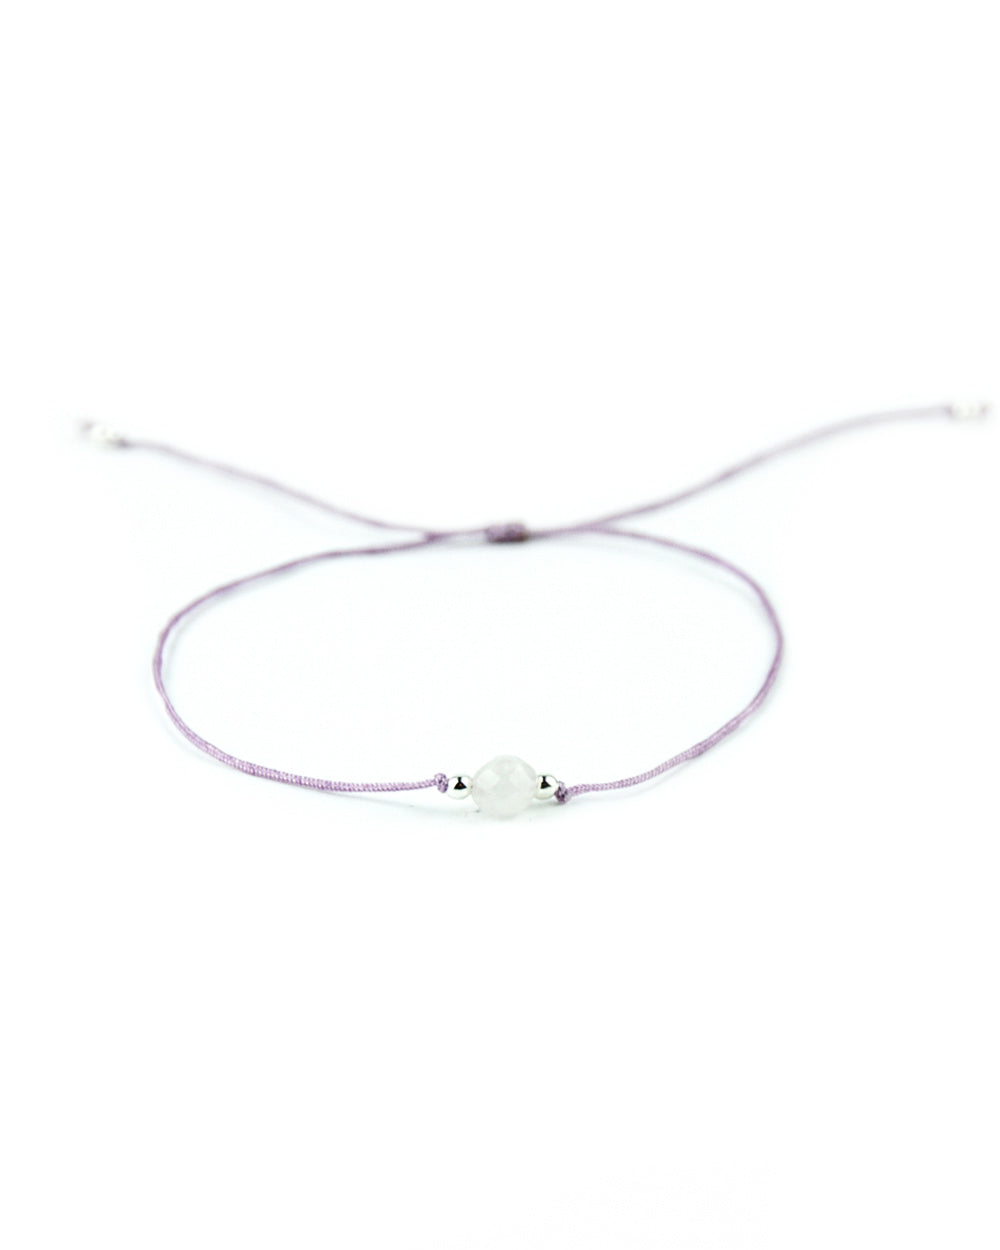 .... Lila Everyday Companion Armband mit Rosenquarz .. Purple Everyday Companion Bracelet with Rosequartz ....